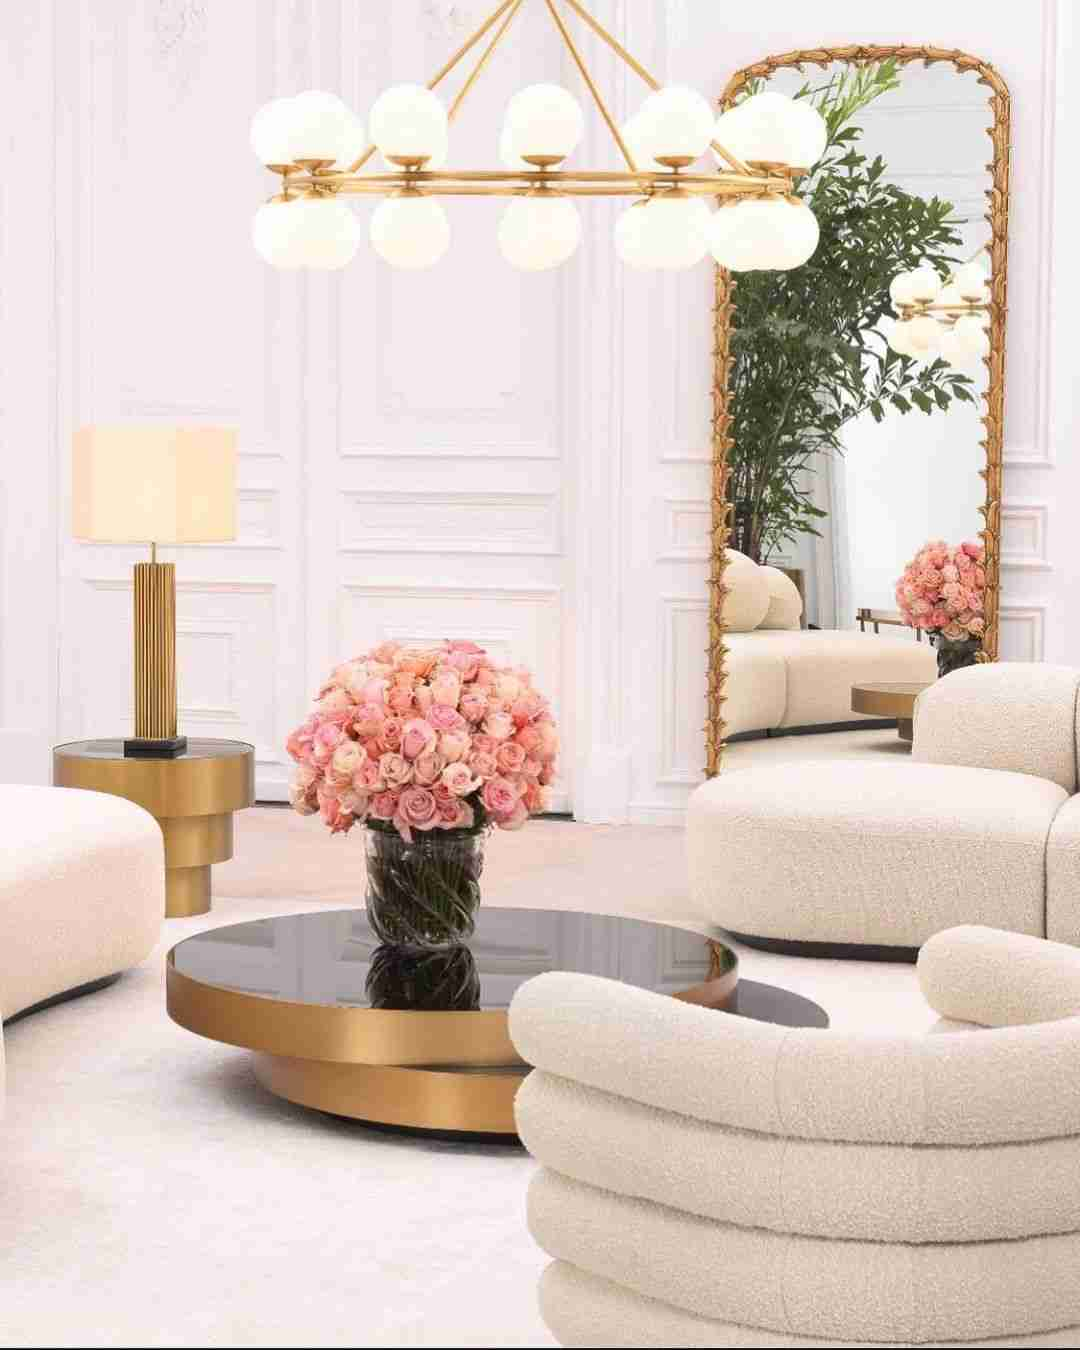 armchair, pink, sofa, living room, dining room, andreotti, furniture, cyprus, limassol, epipla